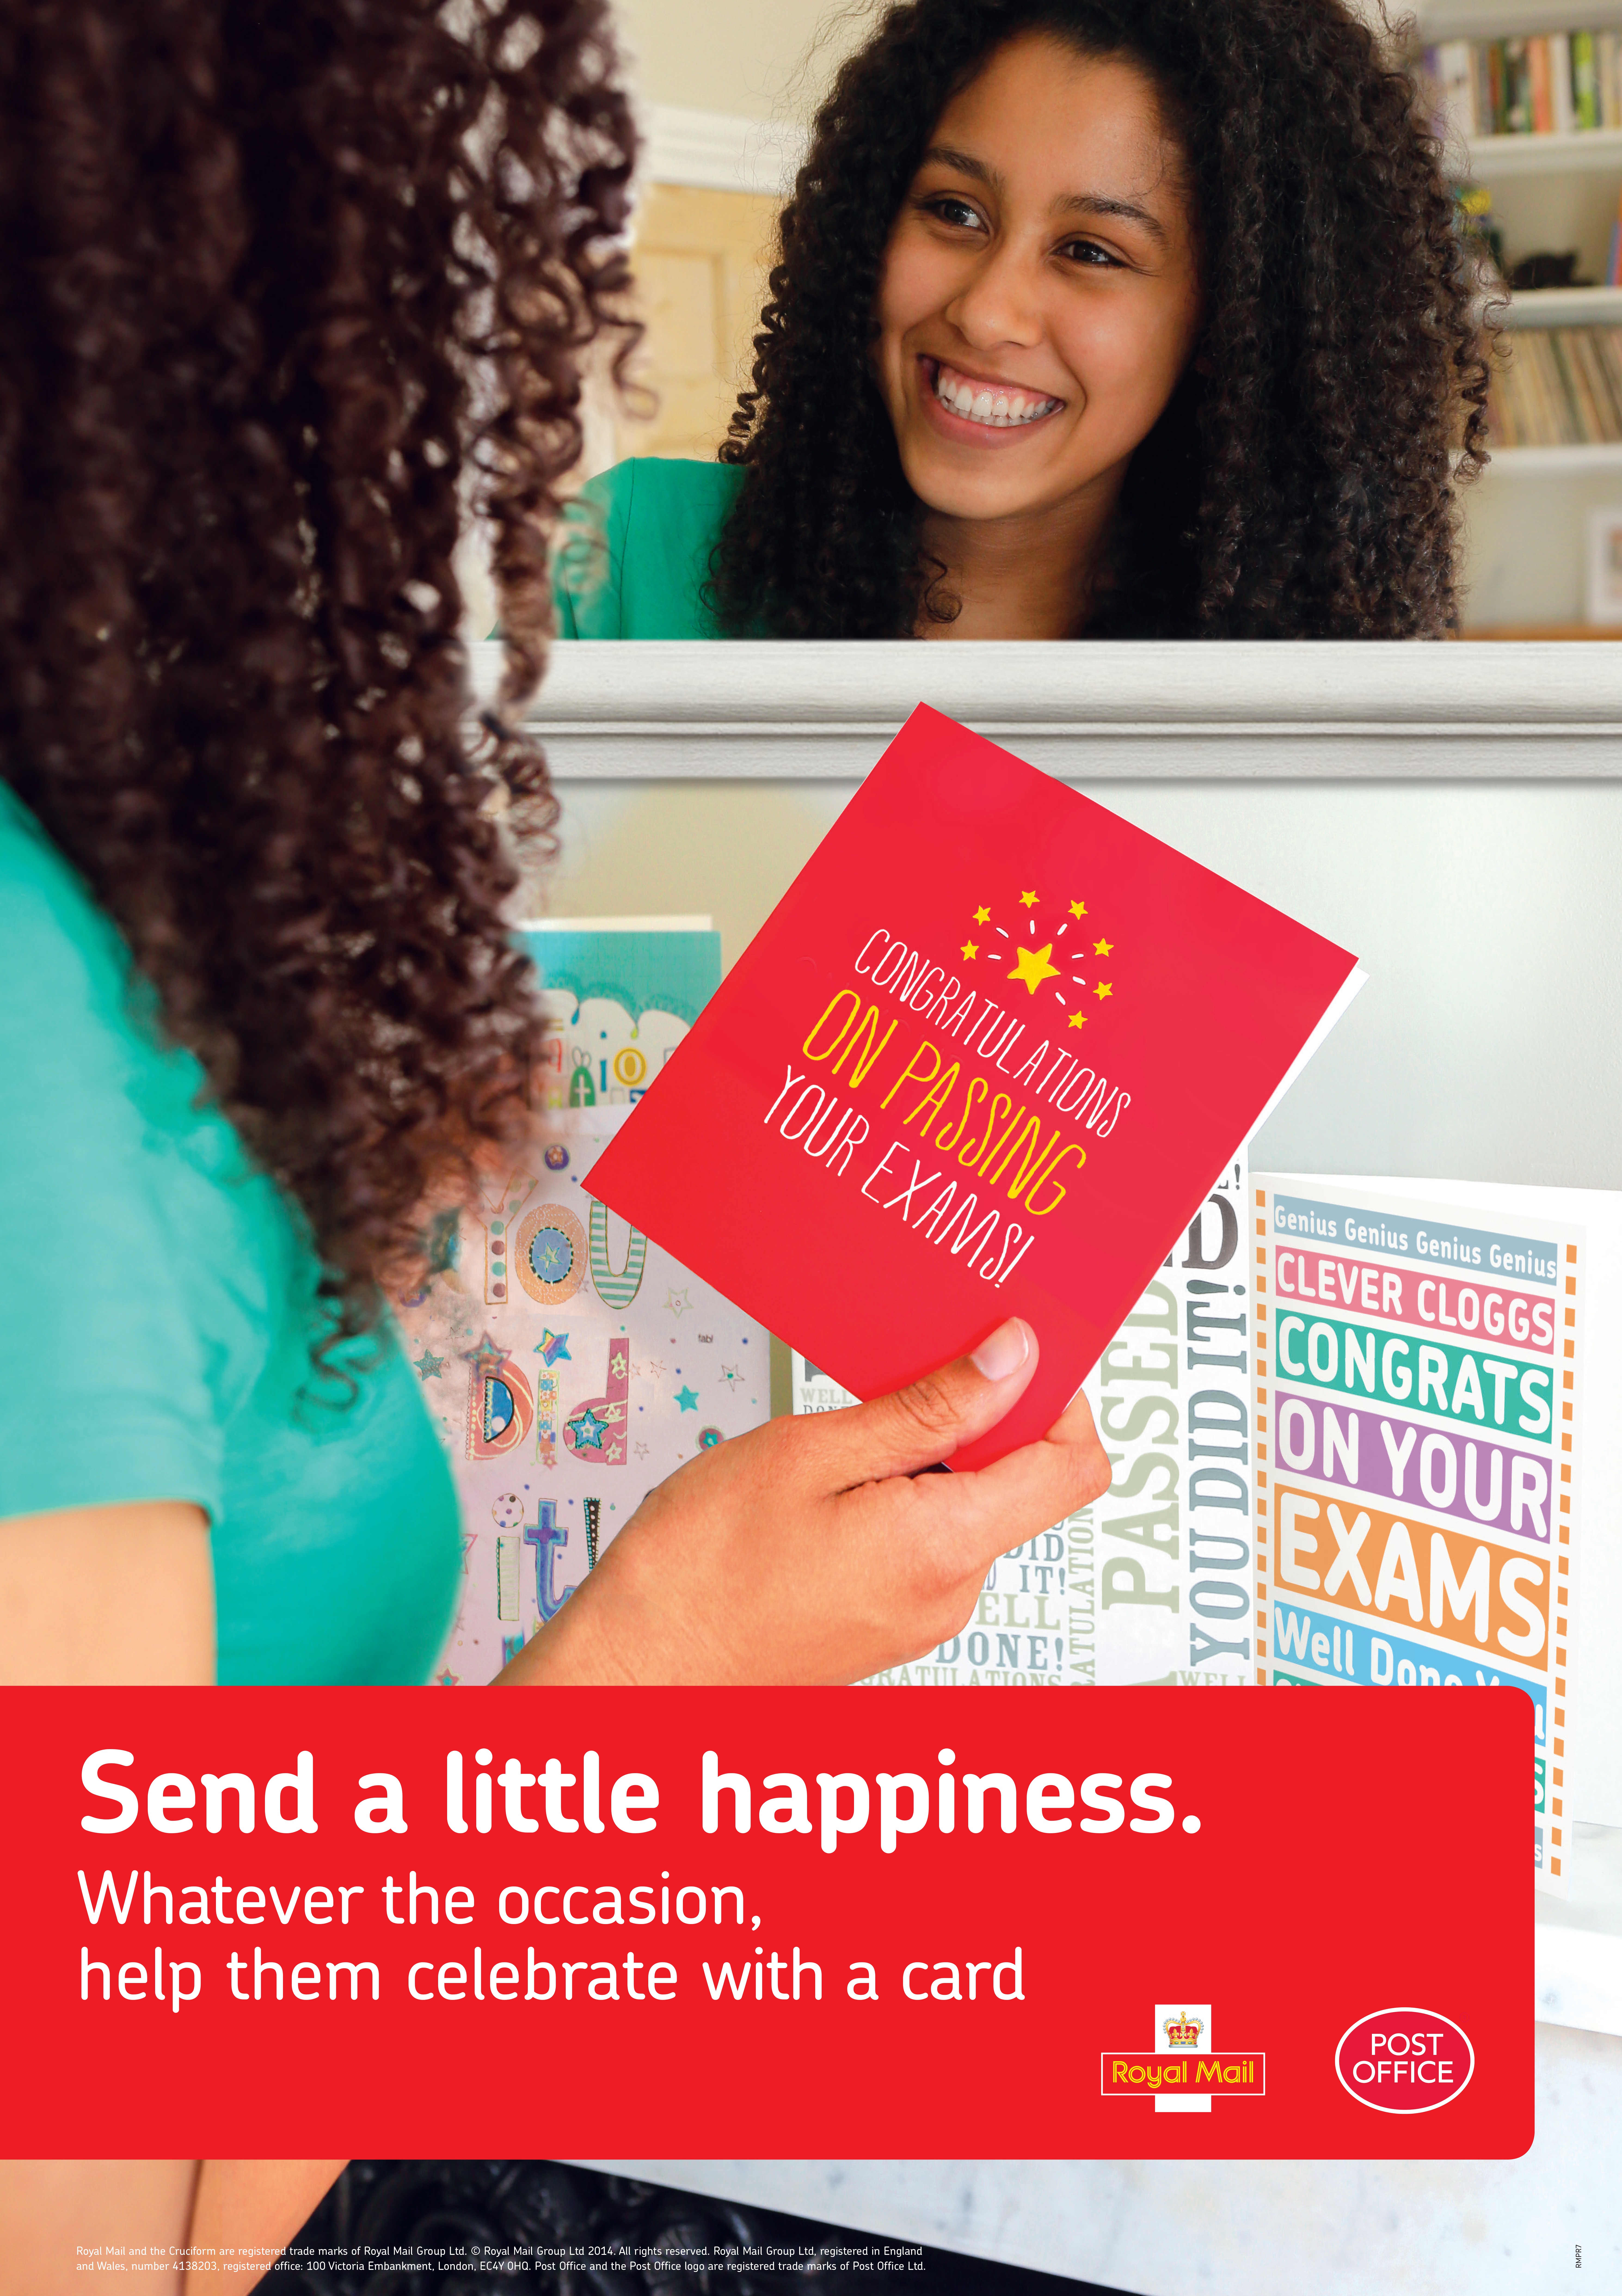 Above: Royal Mail has been known to actively support and promote card sending, as this poster from a few years ago demonstrates.